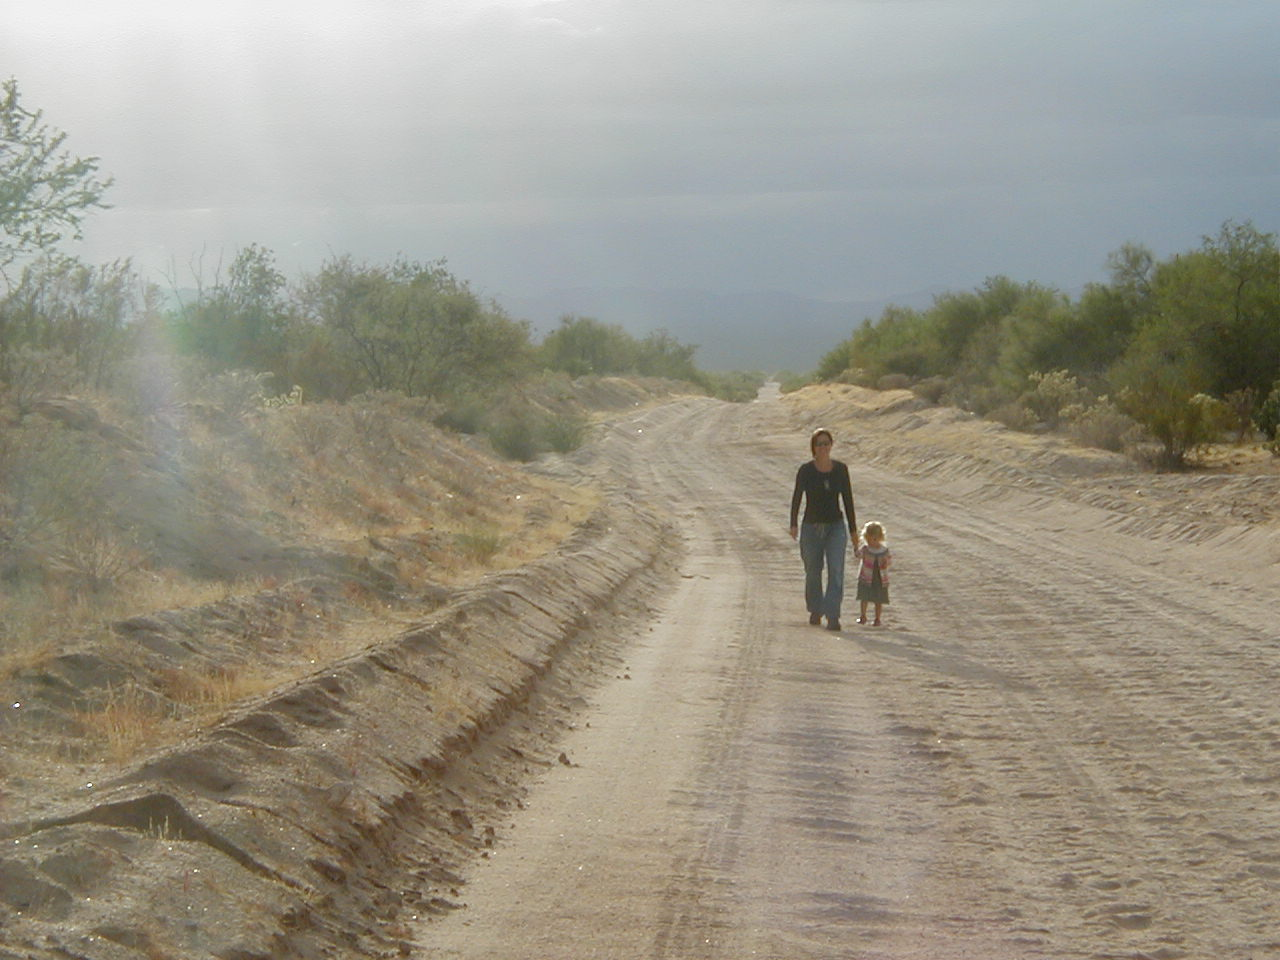 Remote desert road in Mexico.